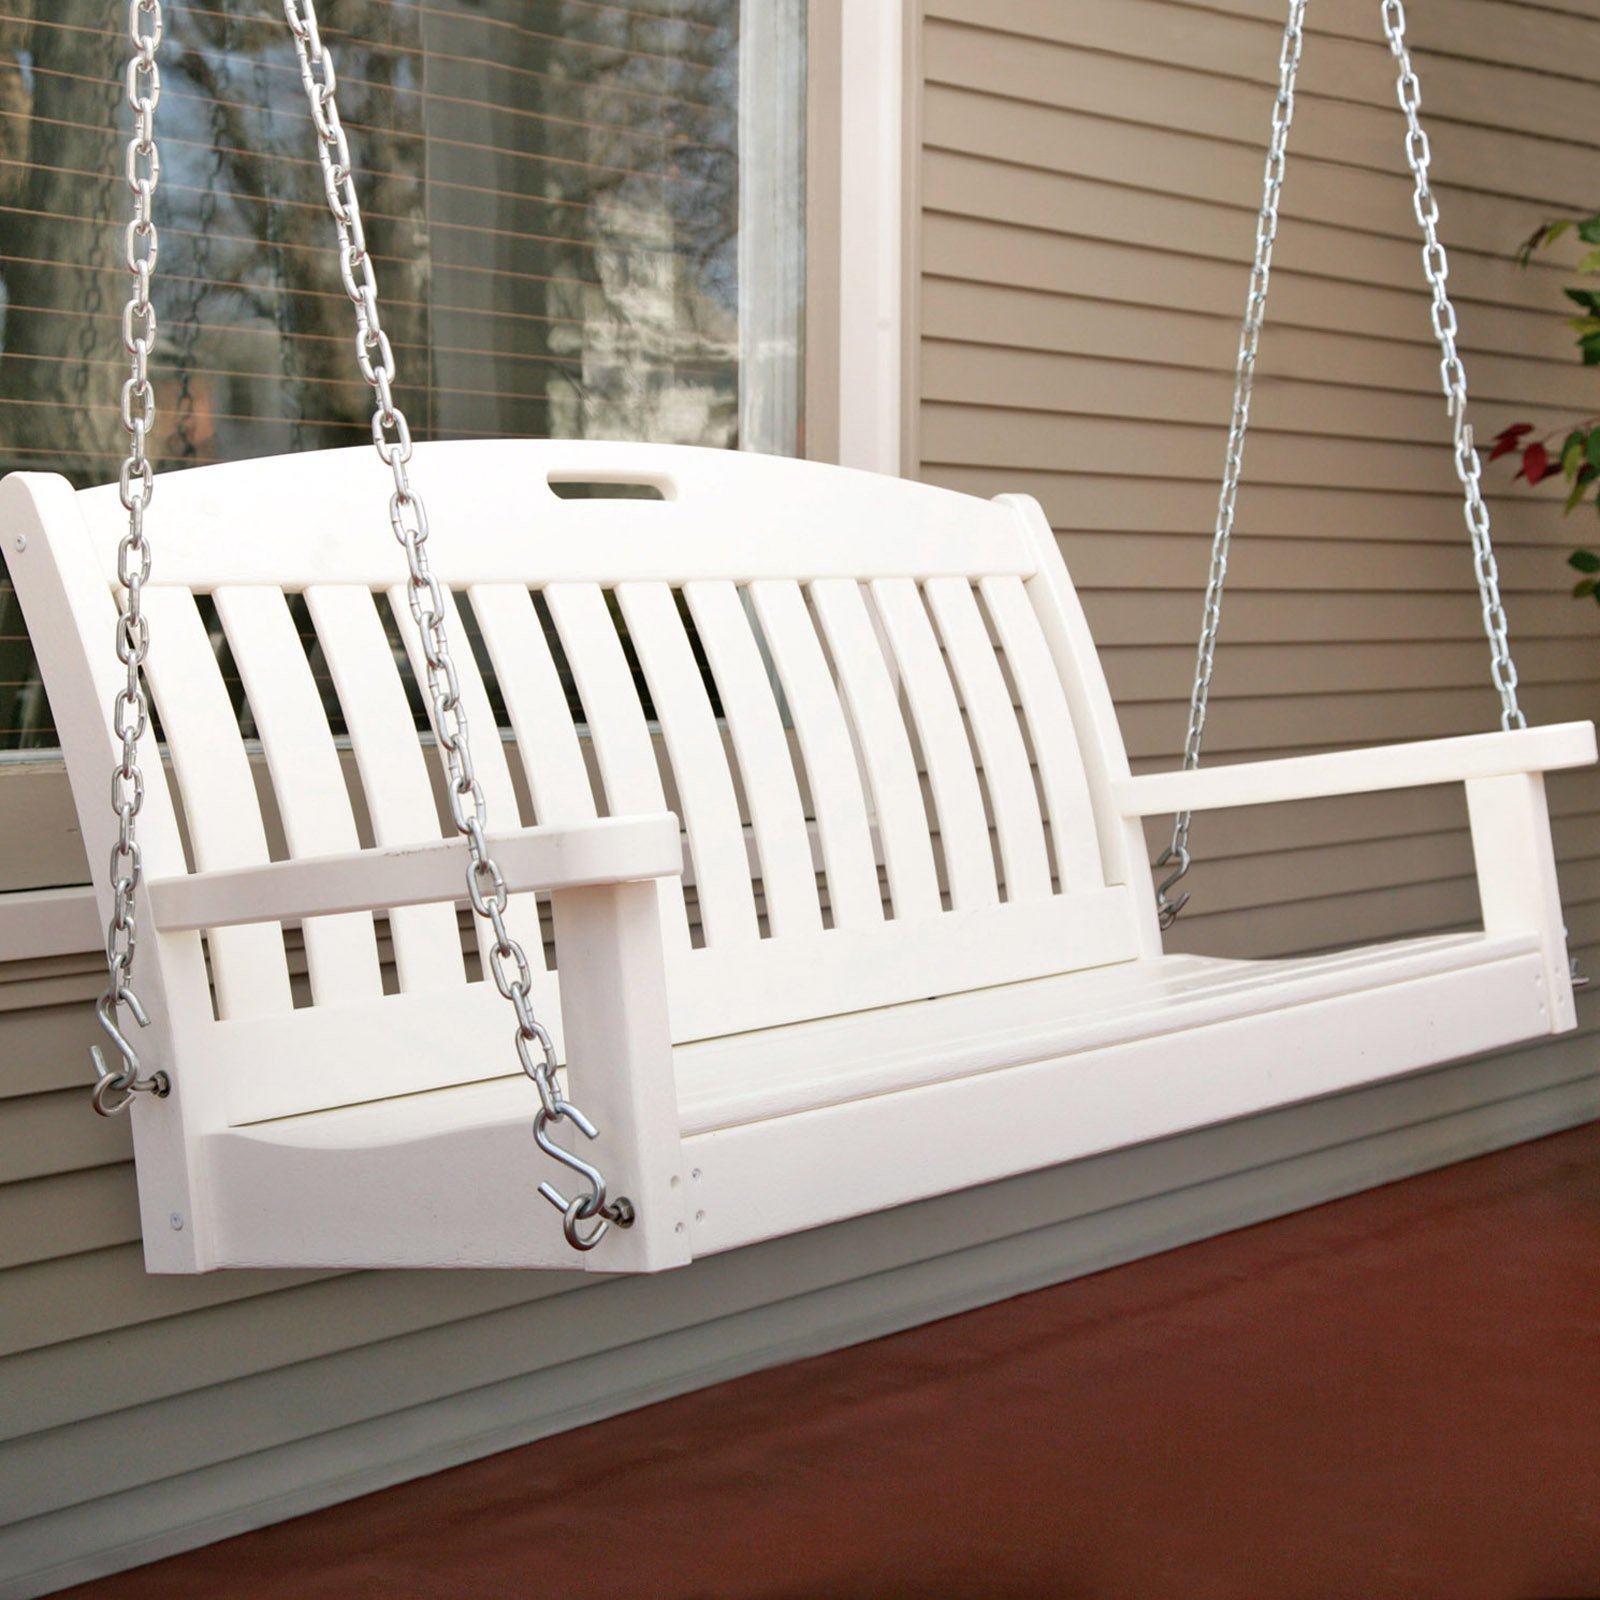 Porch Swing Installation Service – Handy Porch Swing Inside Plain Porch Swings (View 17 of 25)